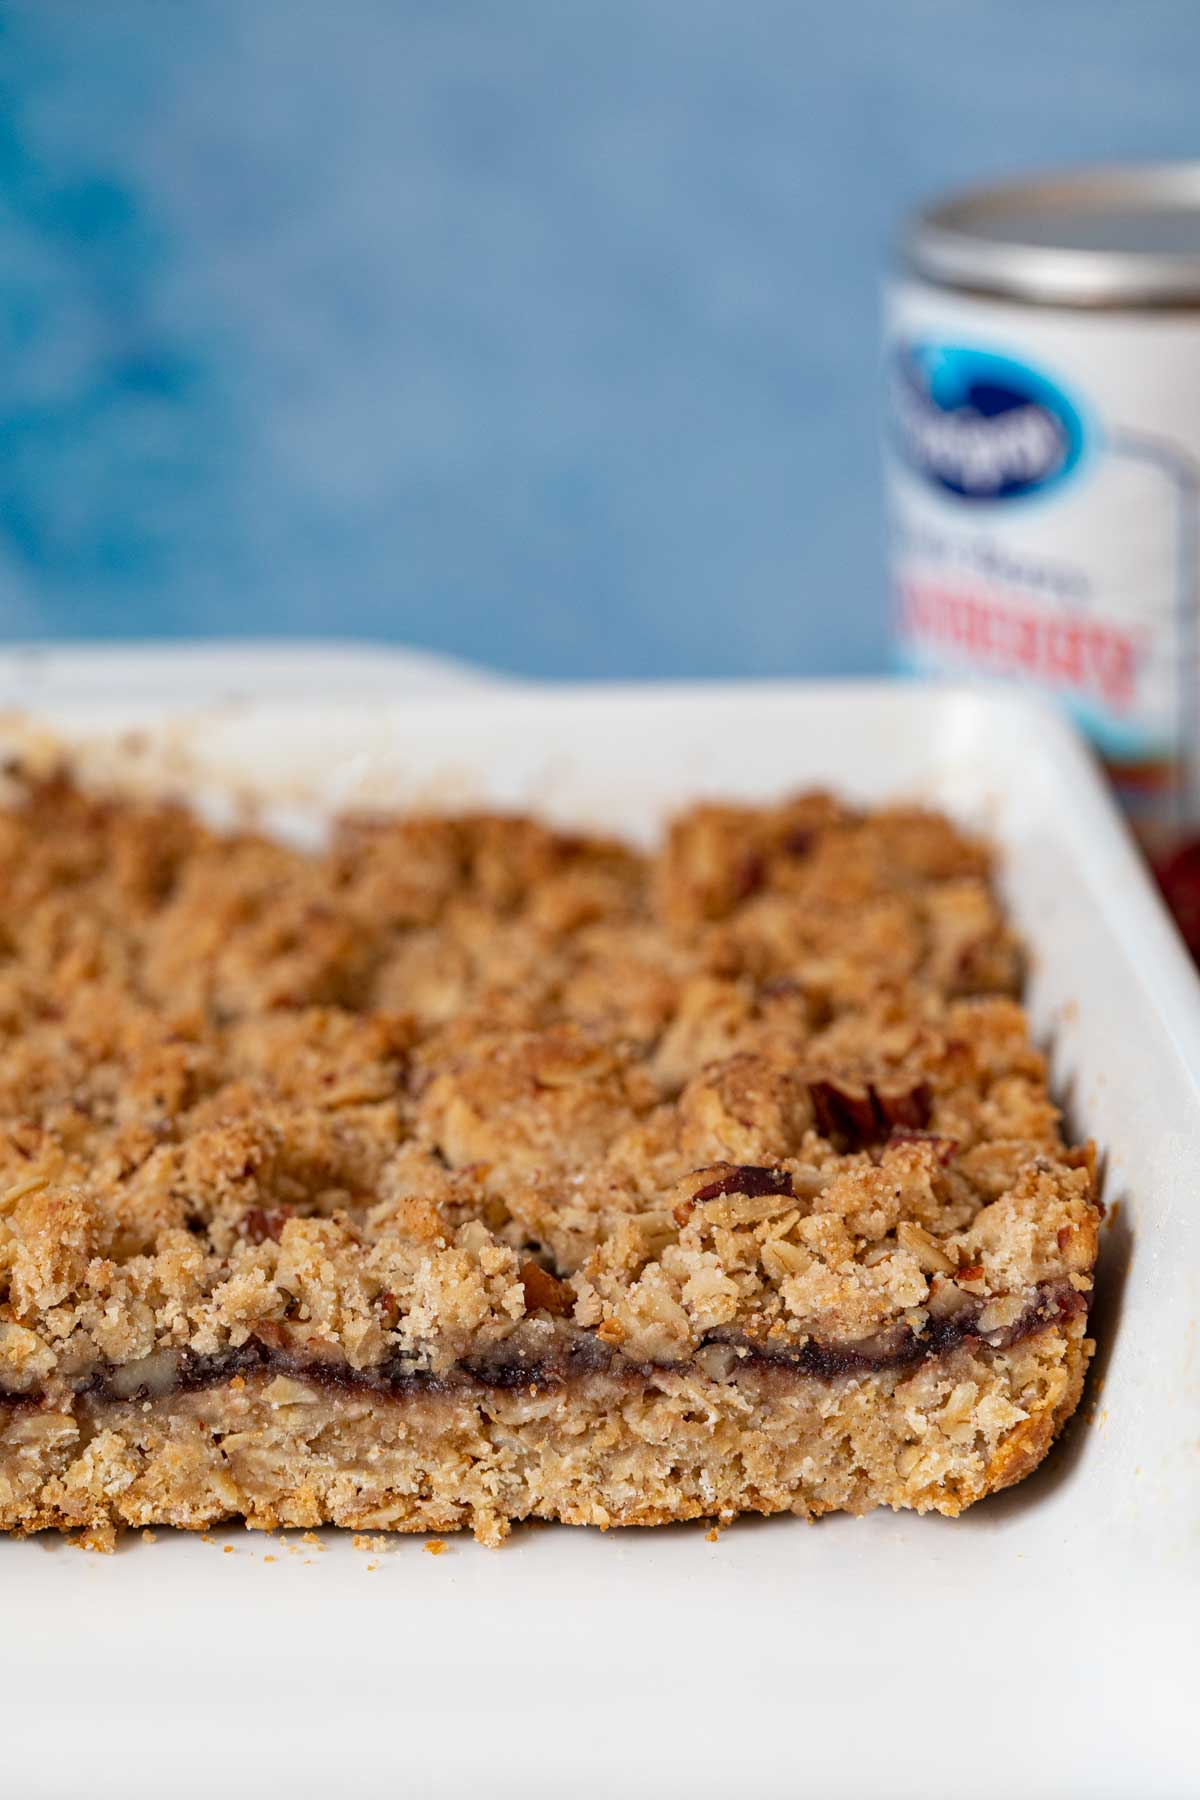 cross-section of Cranberry Oat Bars in bakinf dish